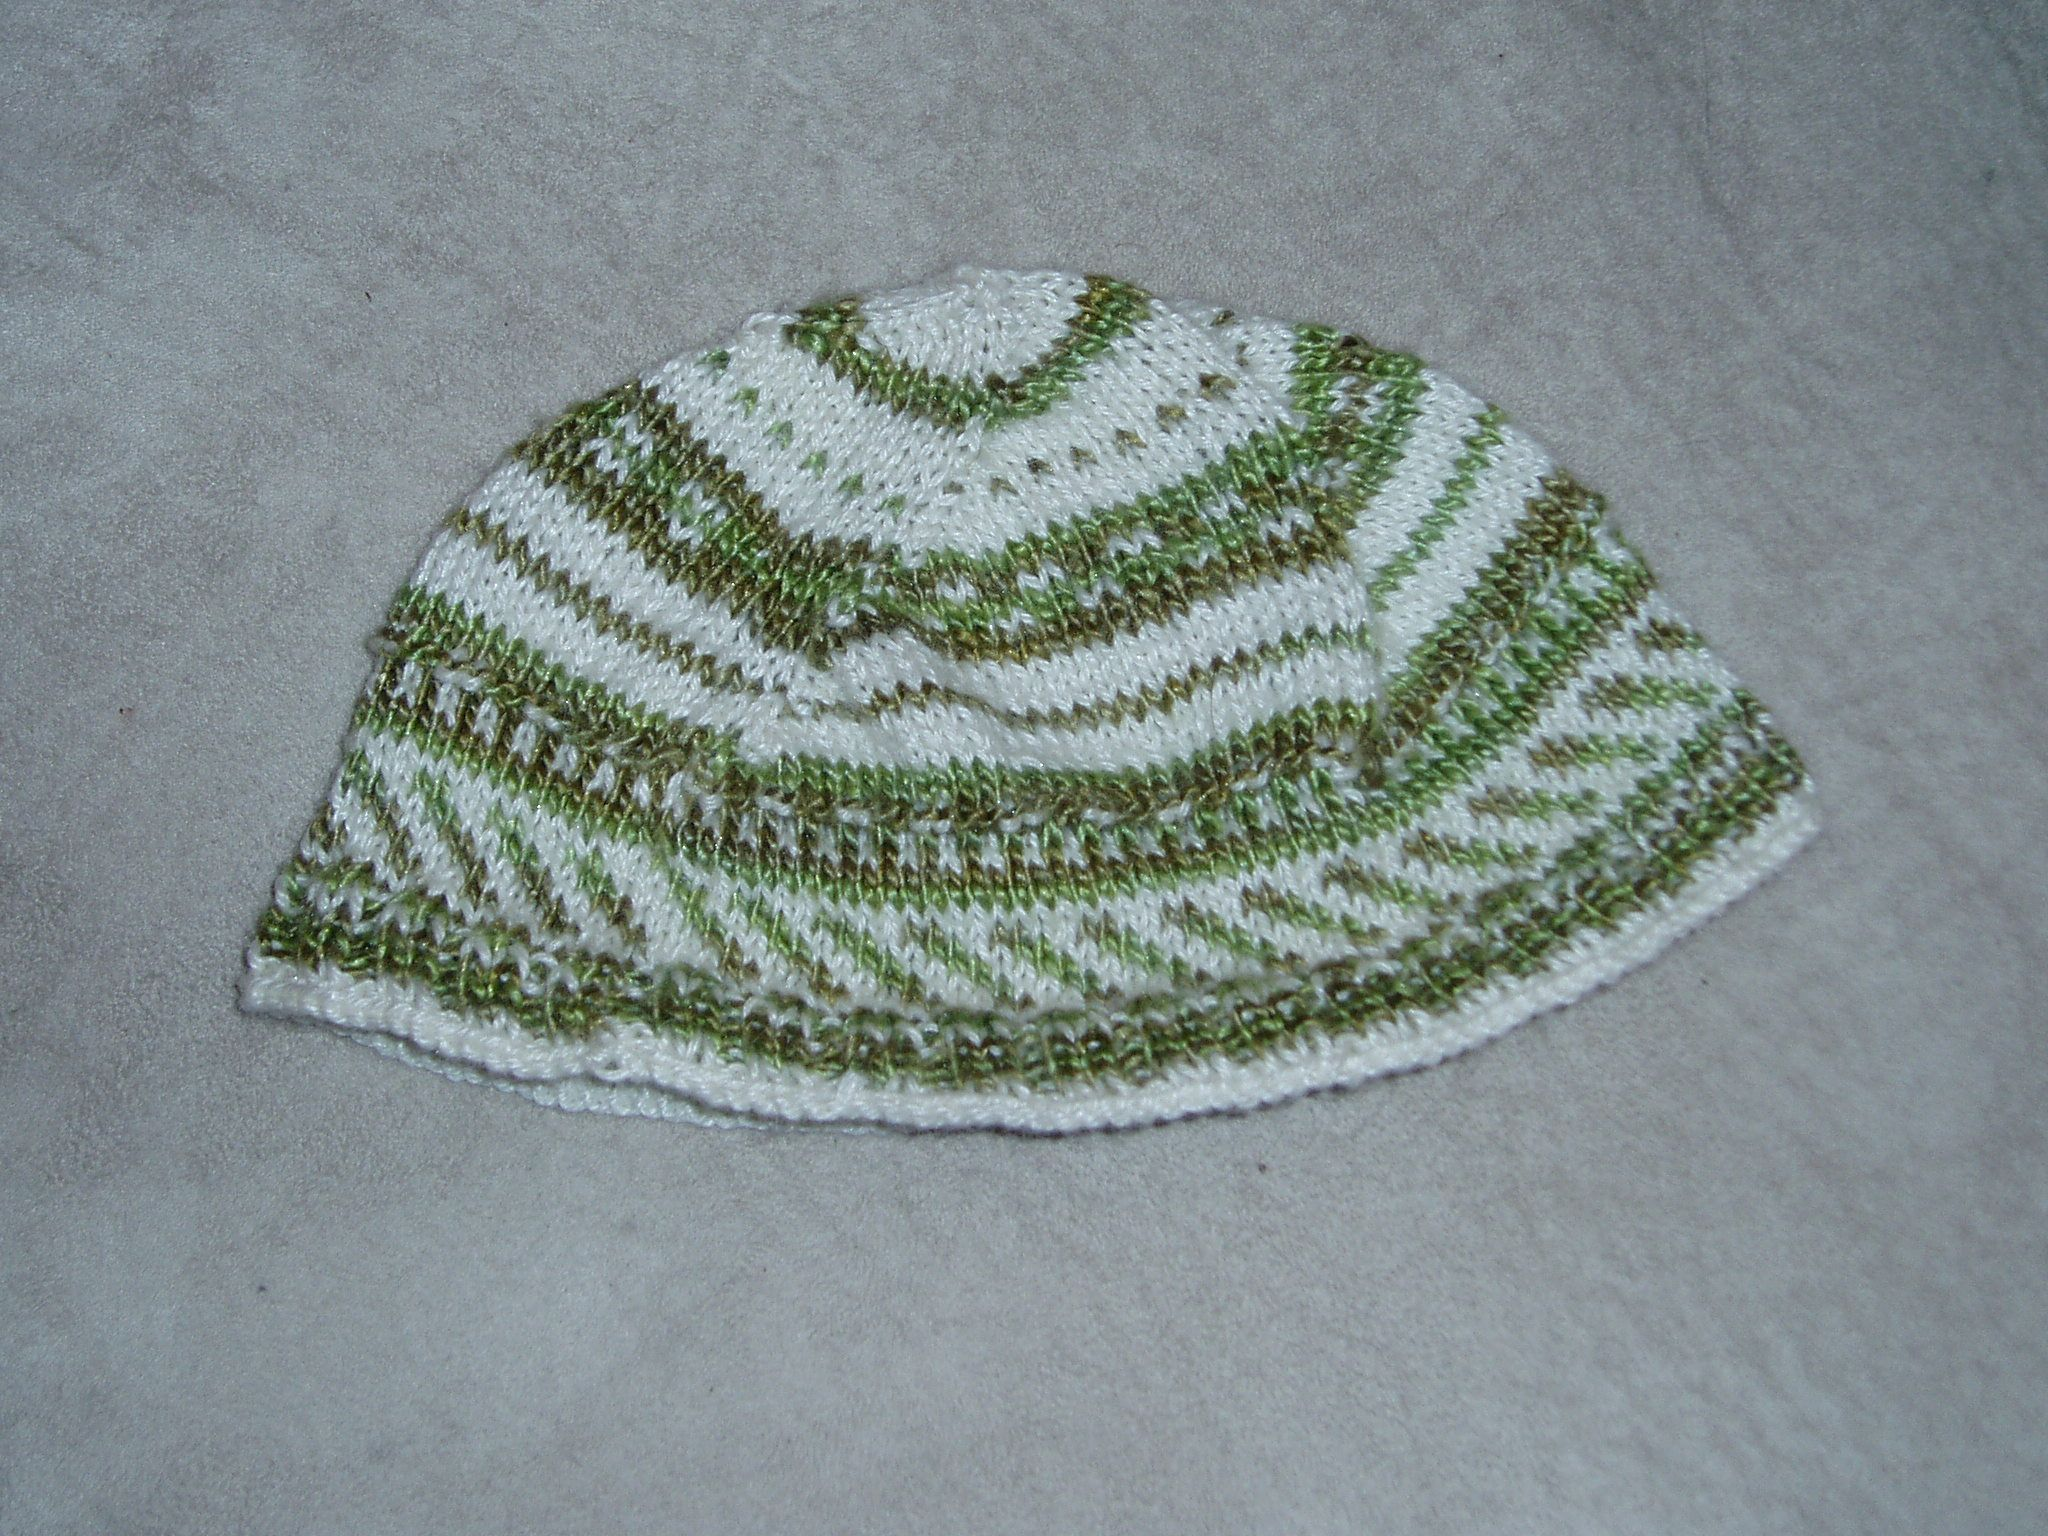 Bukharin Yarmulke | Craft Ideas | Pinterest | Crochet, Embroidery ...